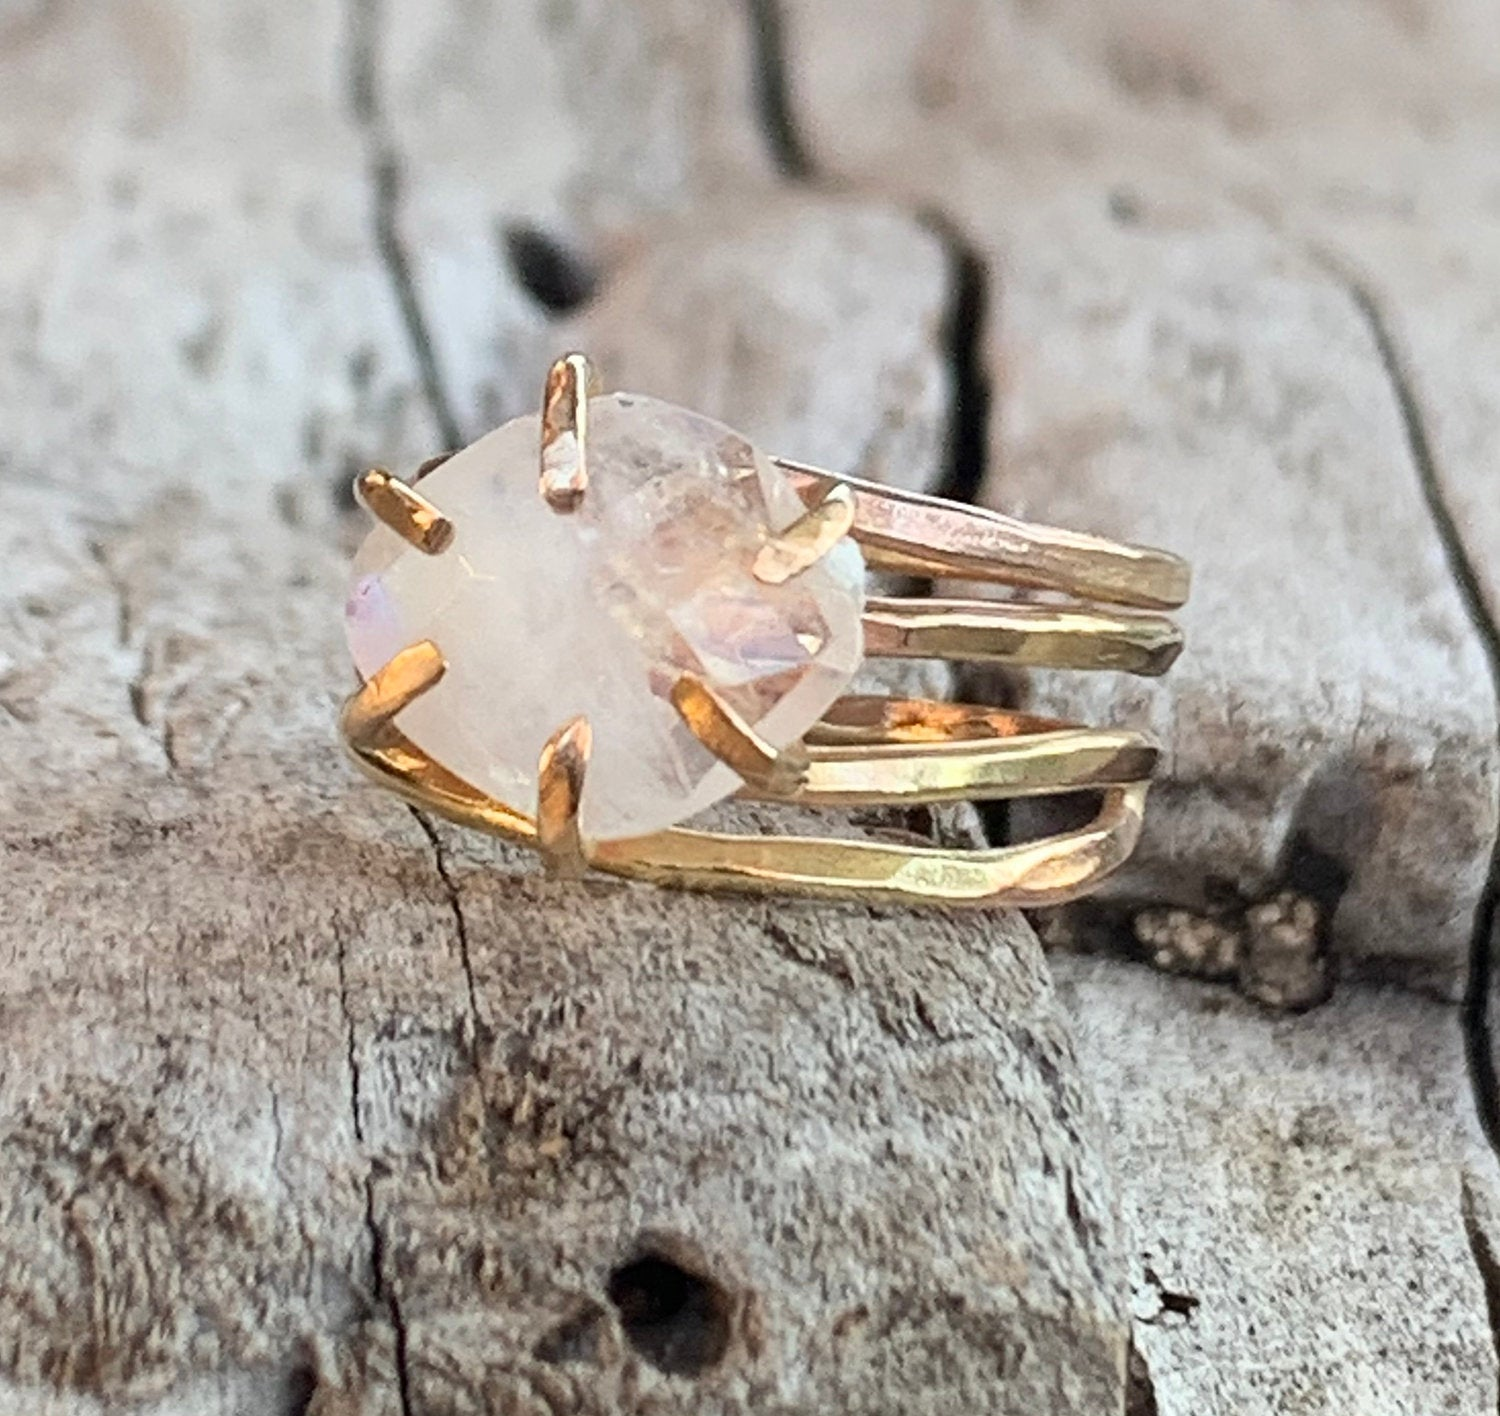 Handmade 14k Gold Fill Wrap Style Ring with a Faceted Prong Set Moonstone